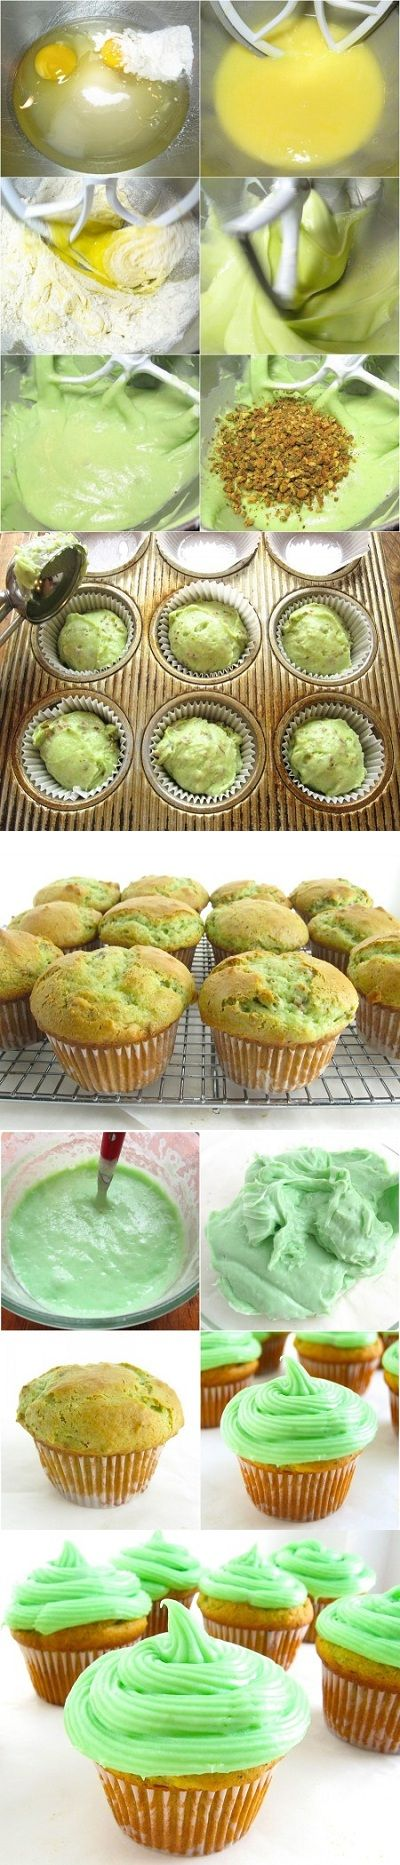 @Bobbi Jo Jelen you just became my hero, pistachio muffins are my favorite!